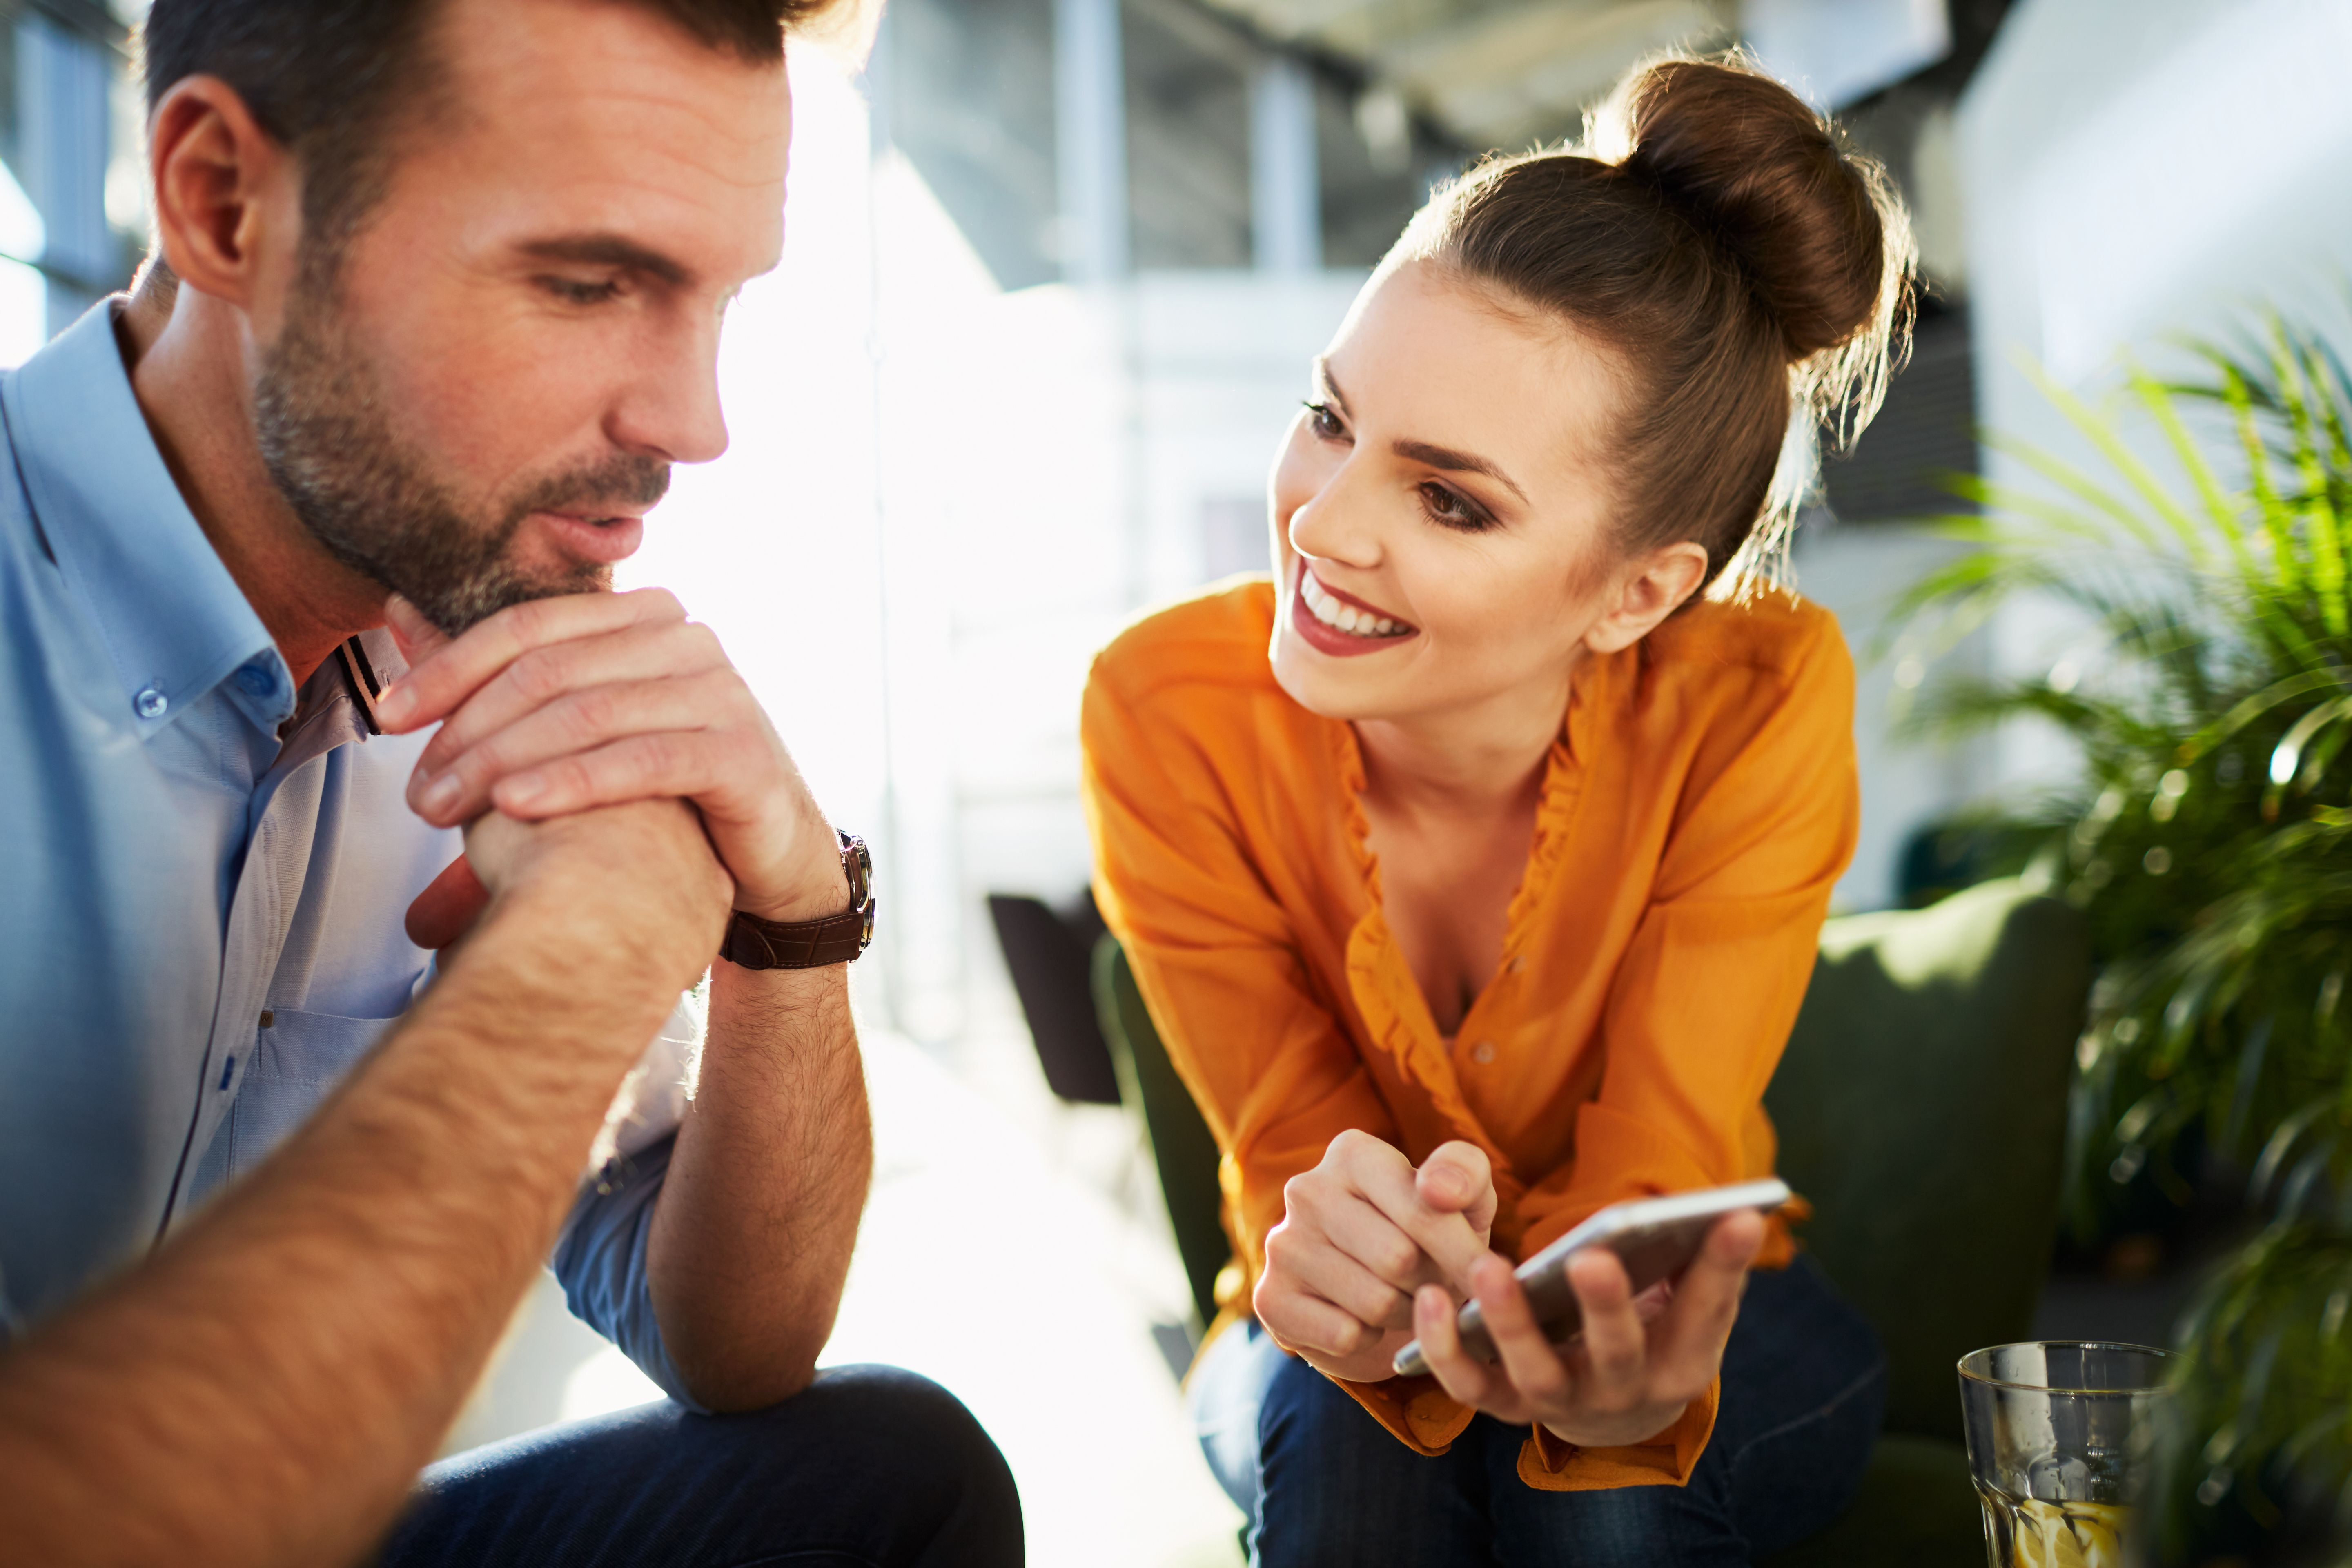 A couple at work talking. | Source: Shutterstock